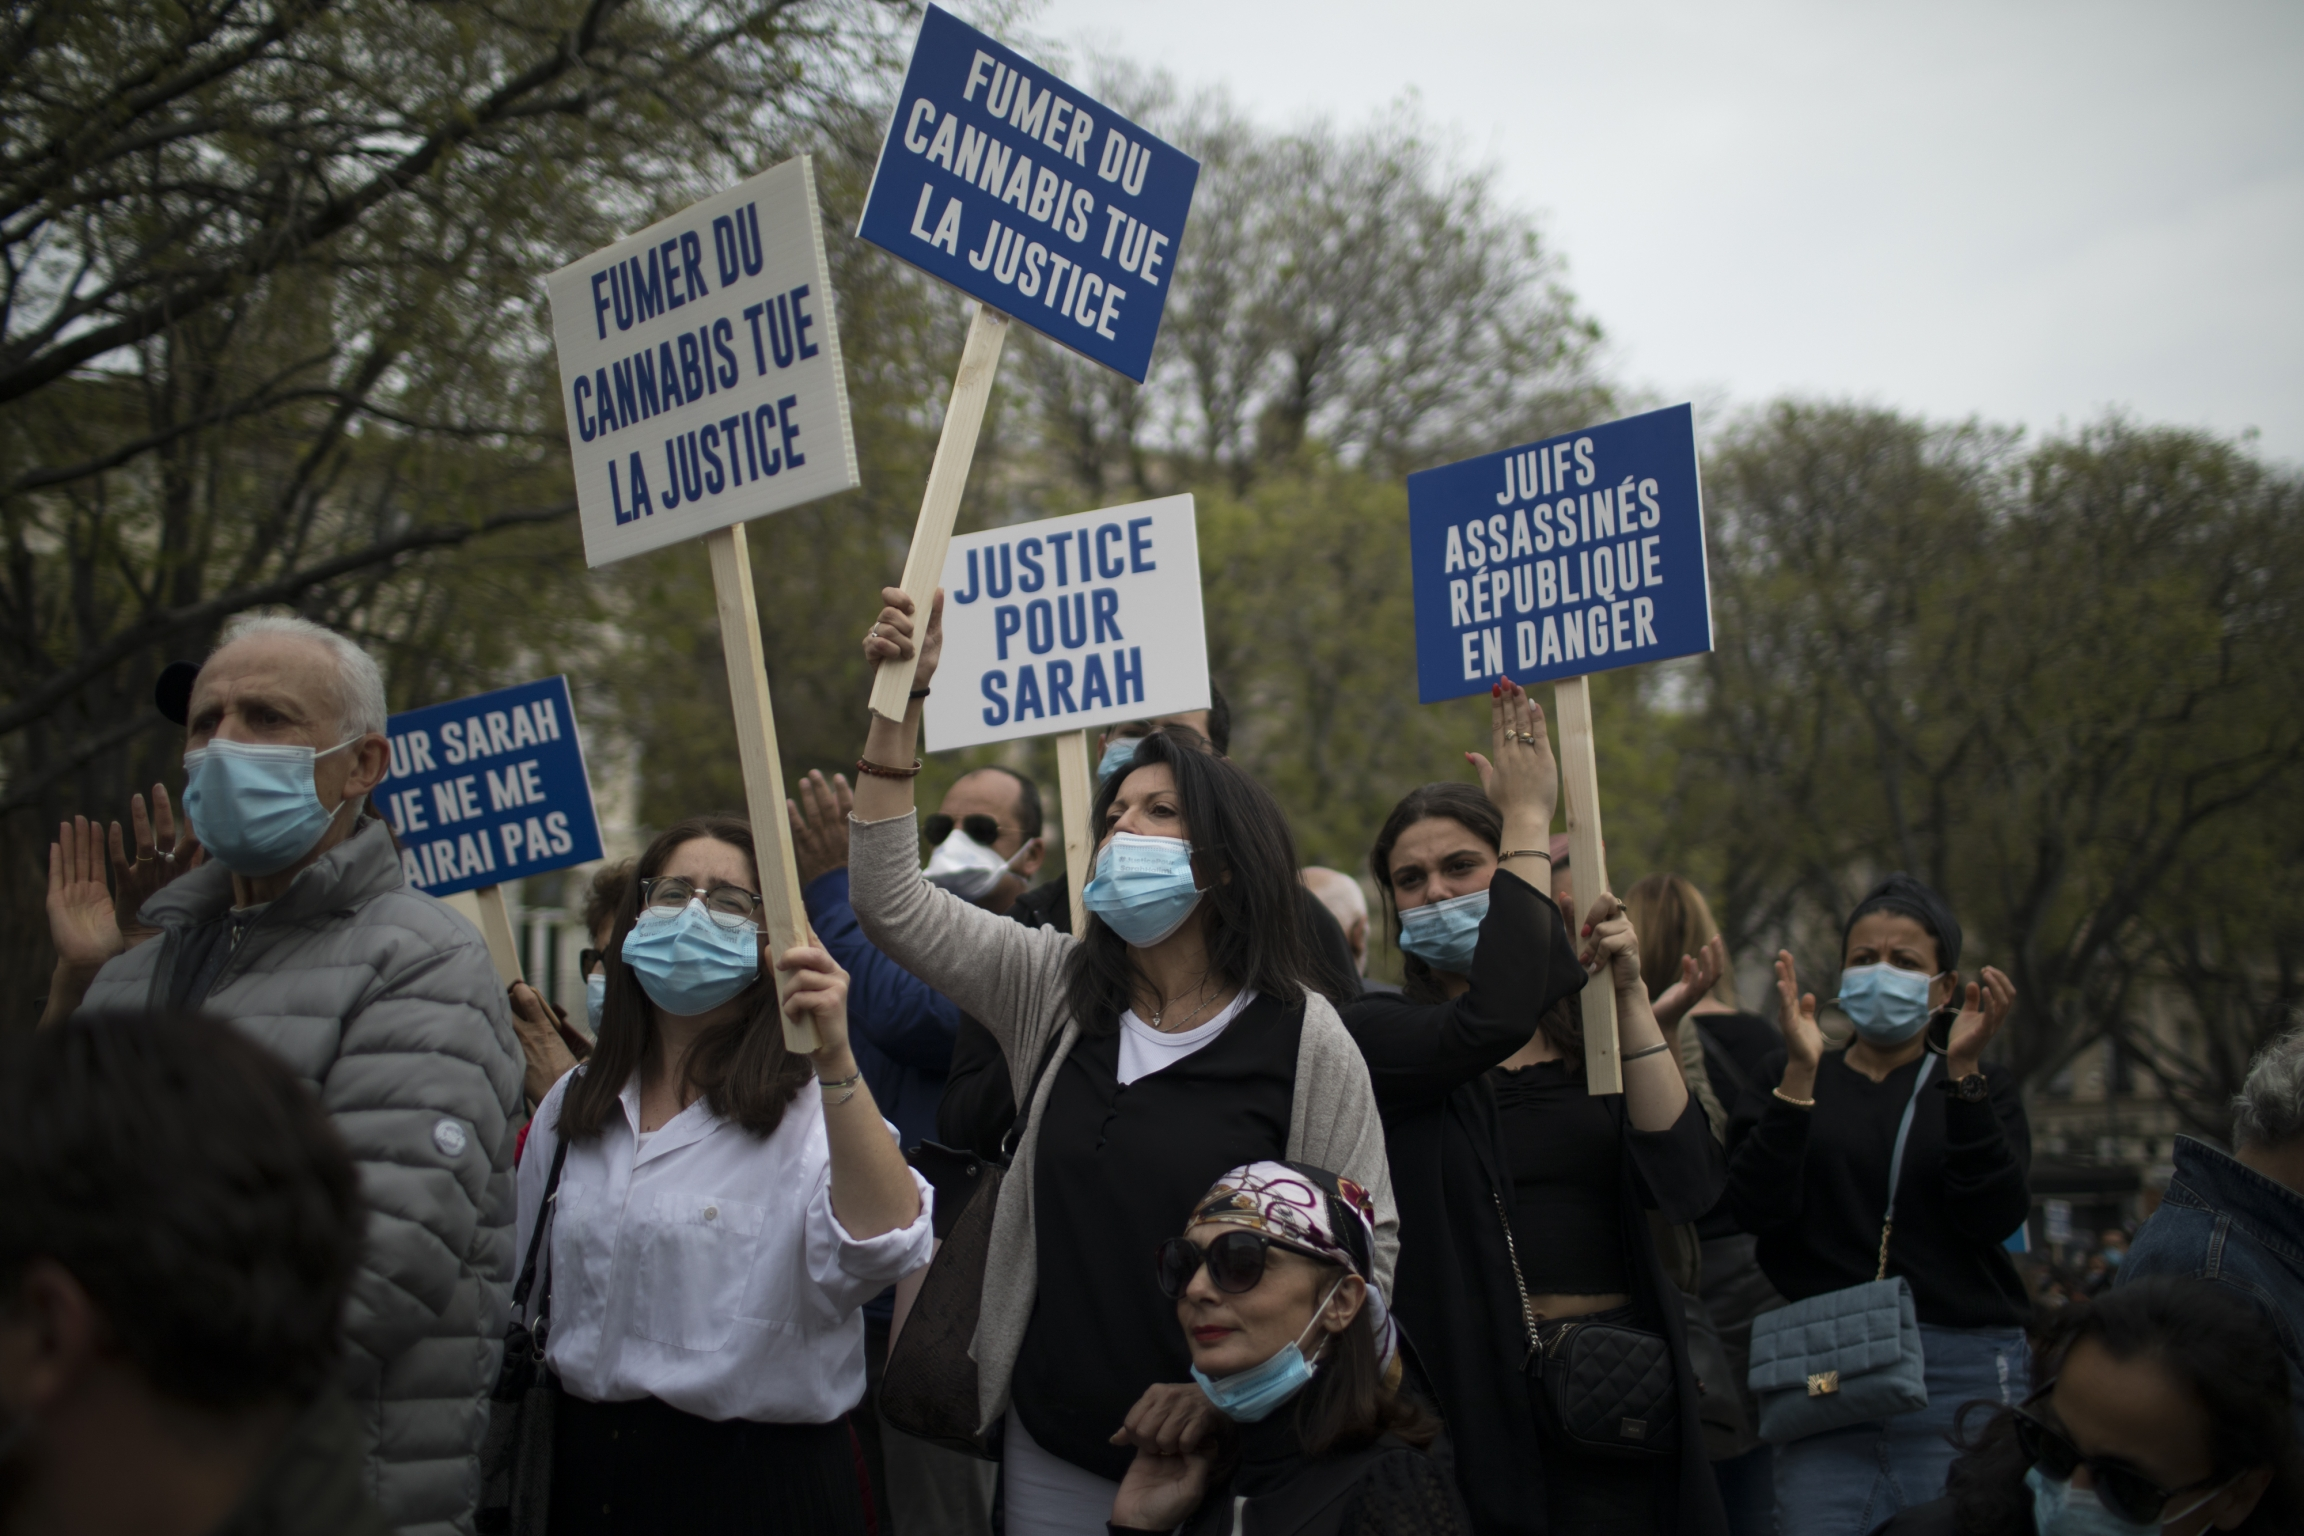 """Protesters hold blue and white signs in French that read """"Justice for Sarah."""""""